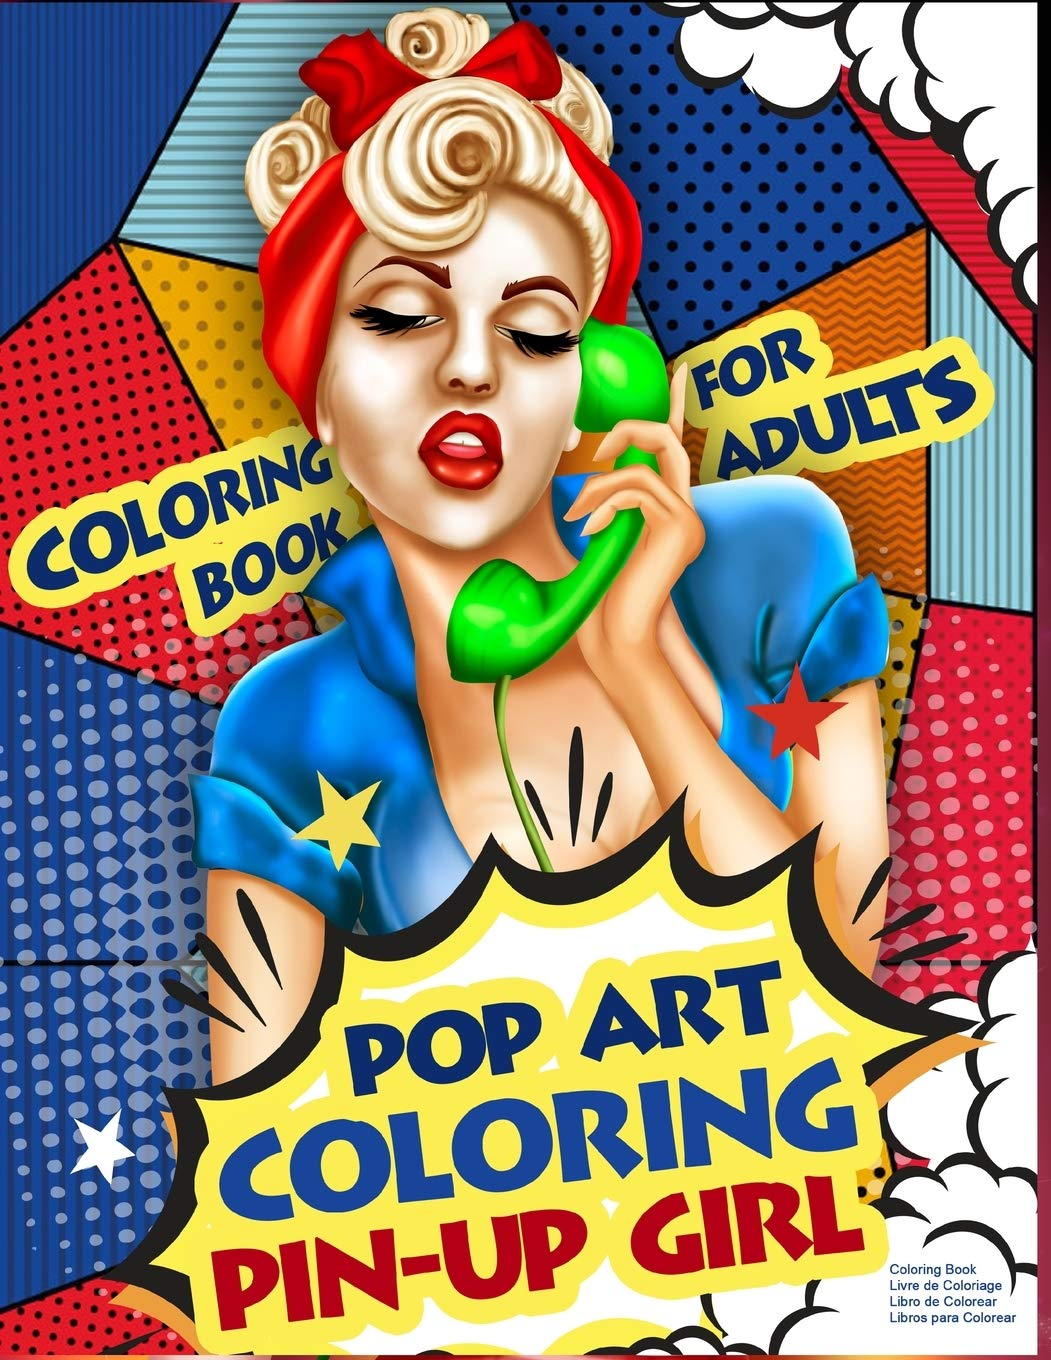 - Amazon.com: Coloring Book For Adults Pop Art Coloring Pin-Up